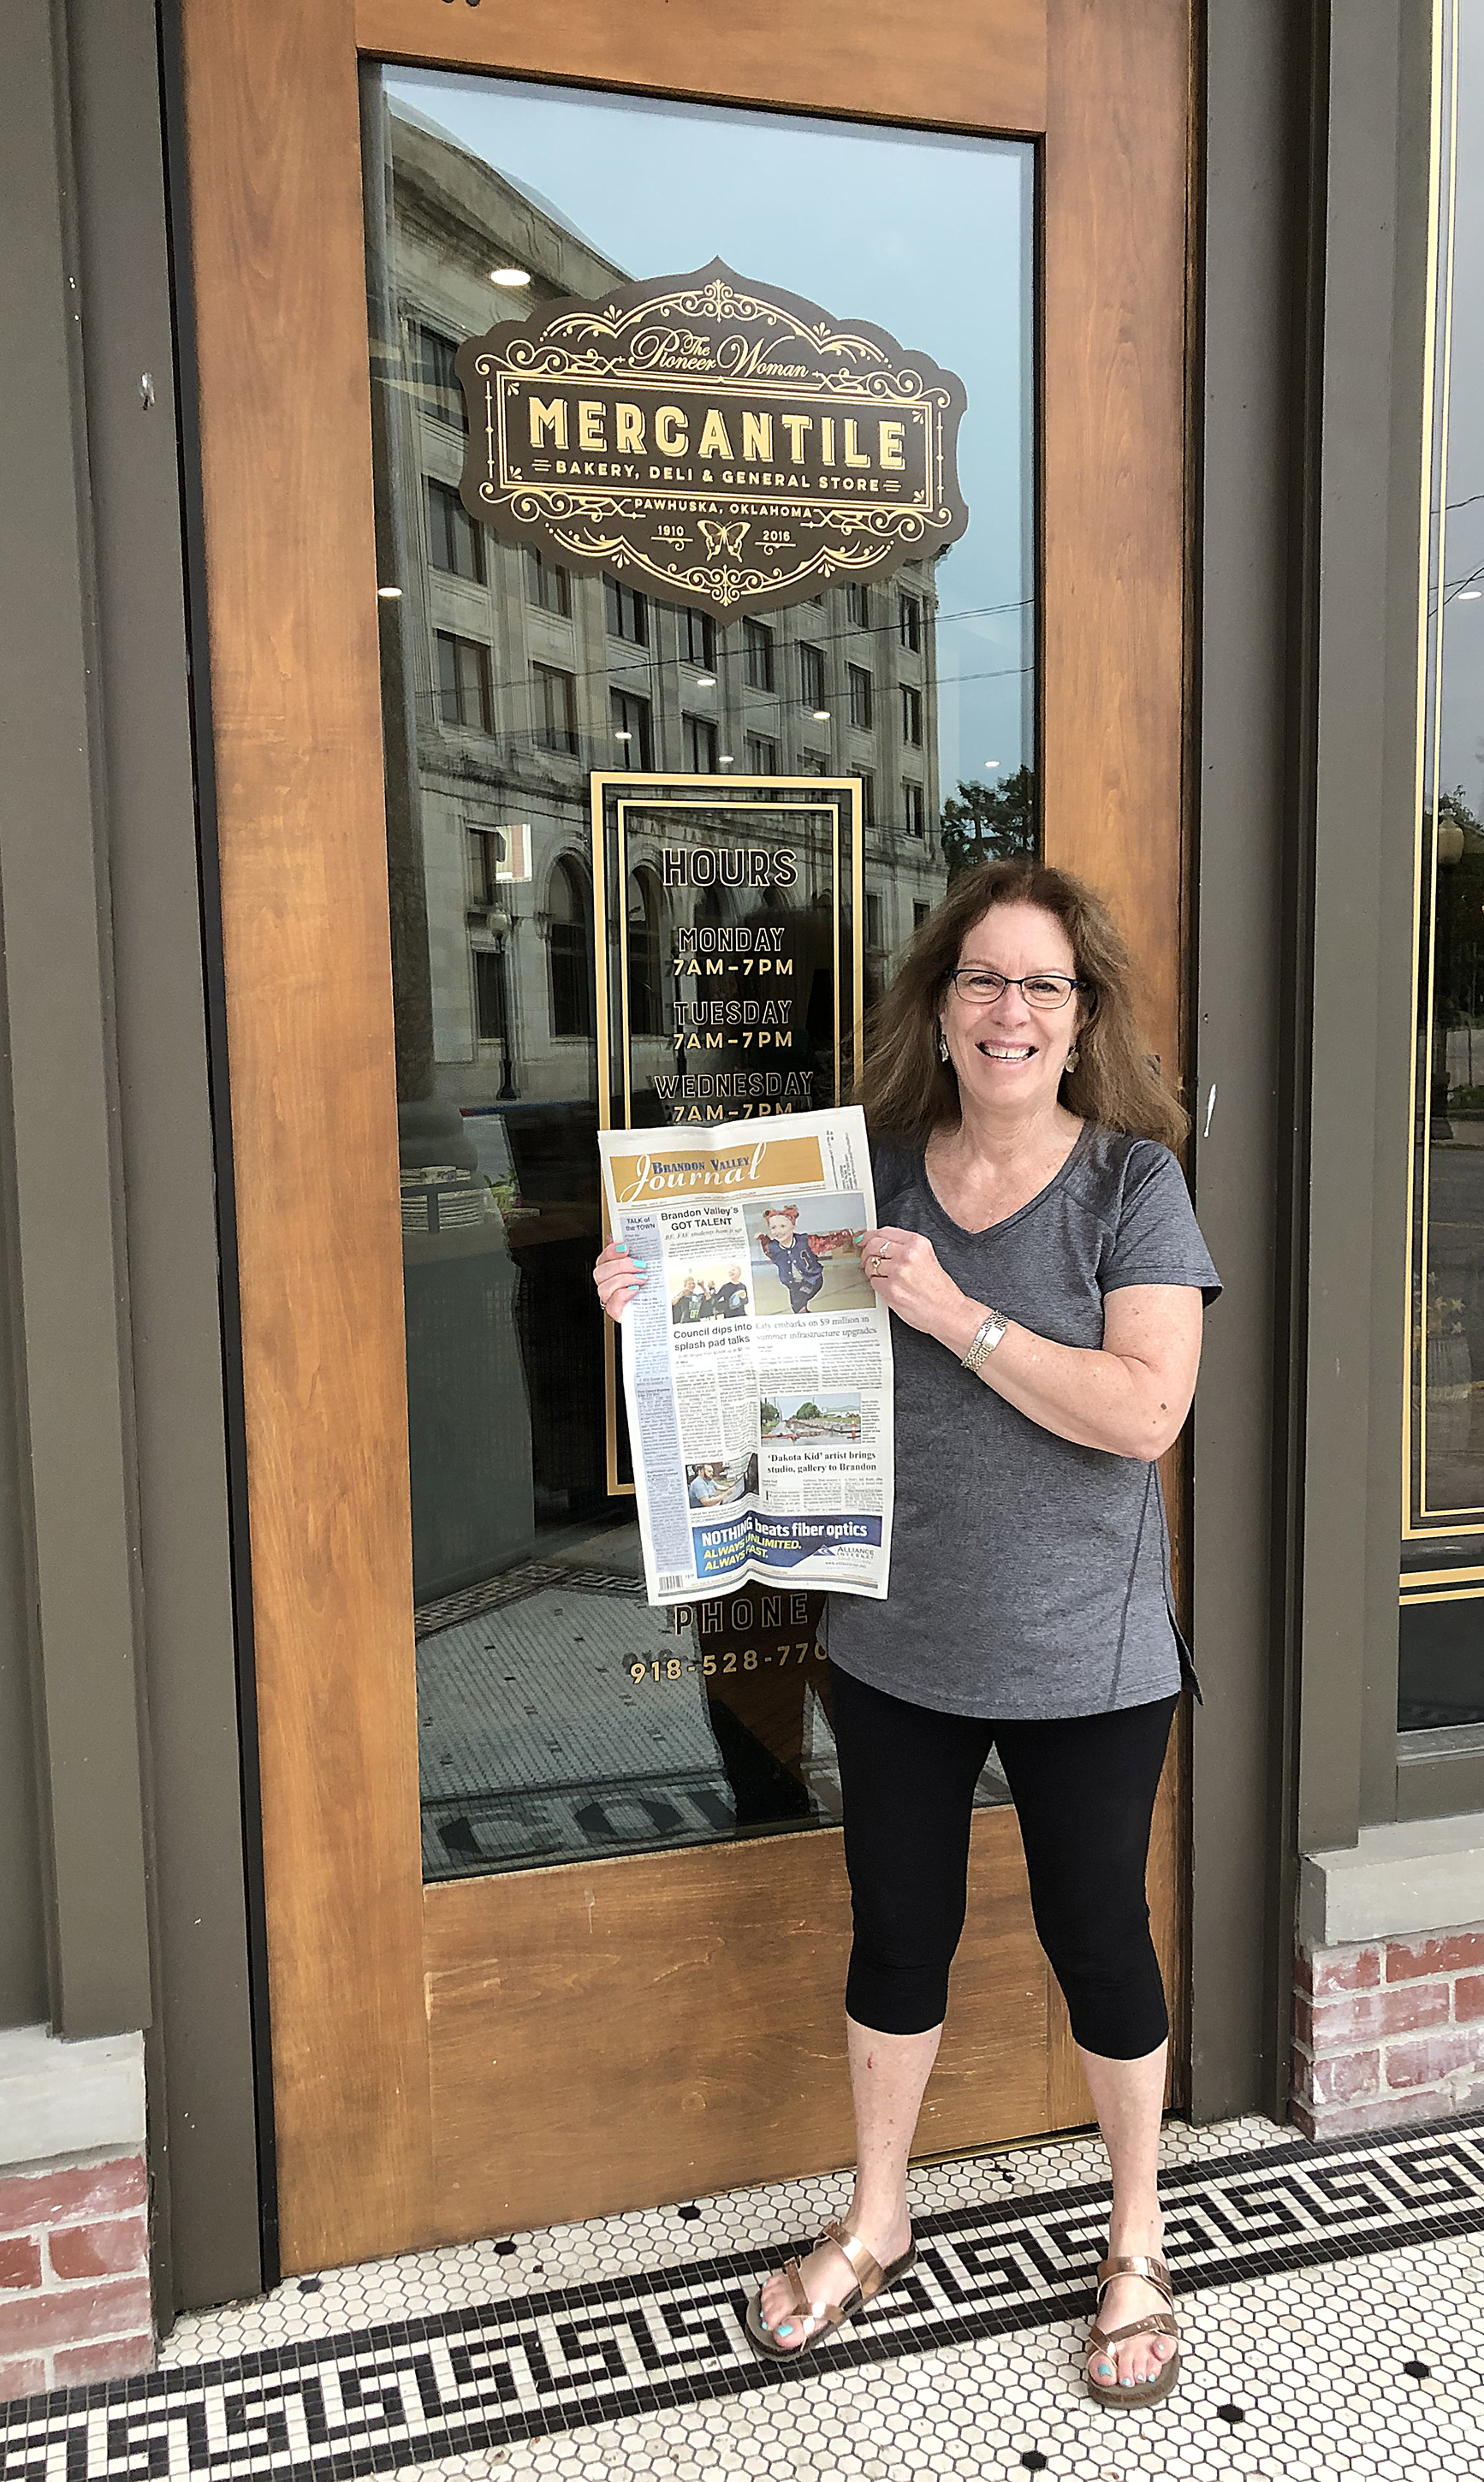 """<span class=""""s1"""">Cheryl Erickson is a fan of the Food Network's """"The Pioneer Woman"""", so much so, that she ventured there last week. The Brandon woman also brought the <i>Brandon Valley Journal</i> to the famed Mercantile, a bakery, deli and general store in Pawhuska, Okla., owned by the show's namesake Pioneer Woman, Ree Drummond. If you're venturing out this summer, remember to put the <i>Brandon Valley Journal</i> on your packing list.</span>*/"""